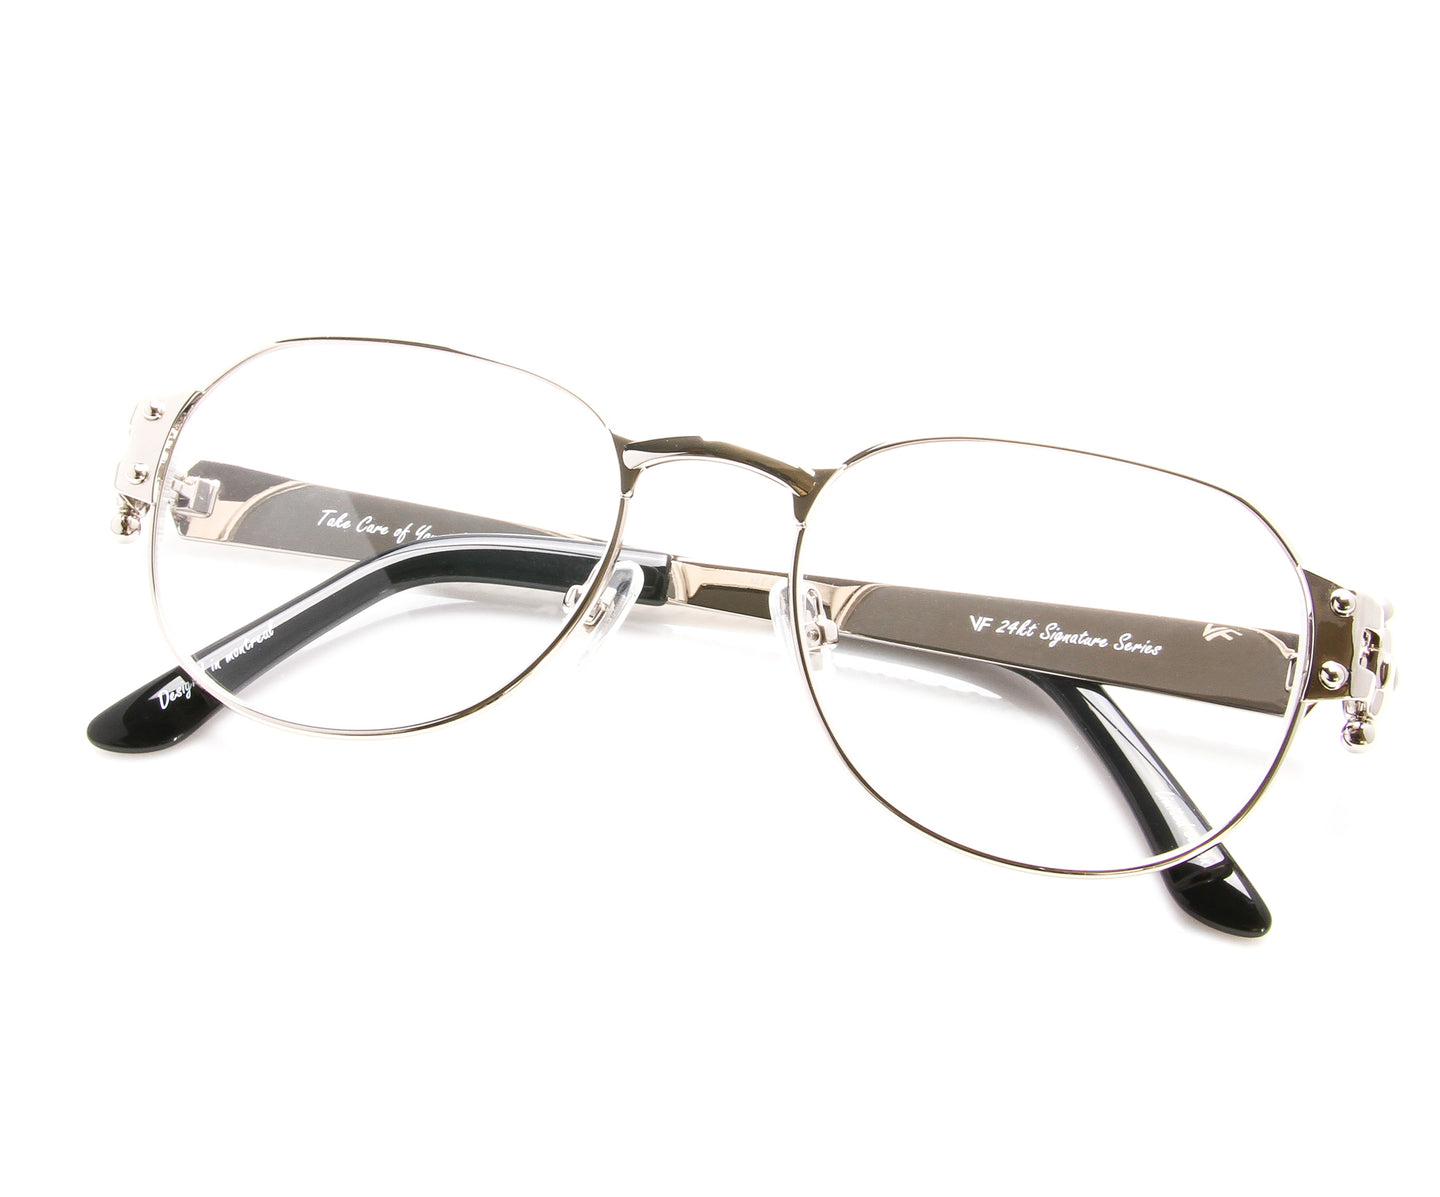 VF 1999 24KT White Gold Masterpiece (Clear), VF Masterpiece , glasses frames, eyeglasses online, eyeglass frames, mens glasses, womens glasses, buy glasses online, designer eyeglasses, vintage sunglasses, retro sunglasses, vintage glasses, sunglass, eyeglass, glasses, lens, vintage frames company, vf